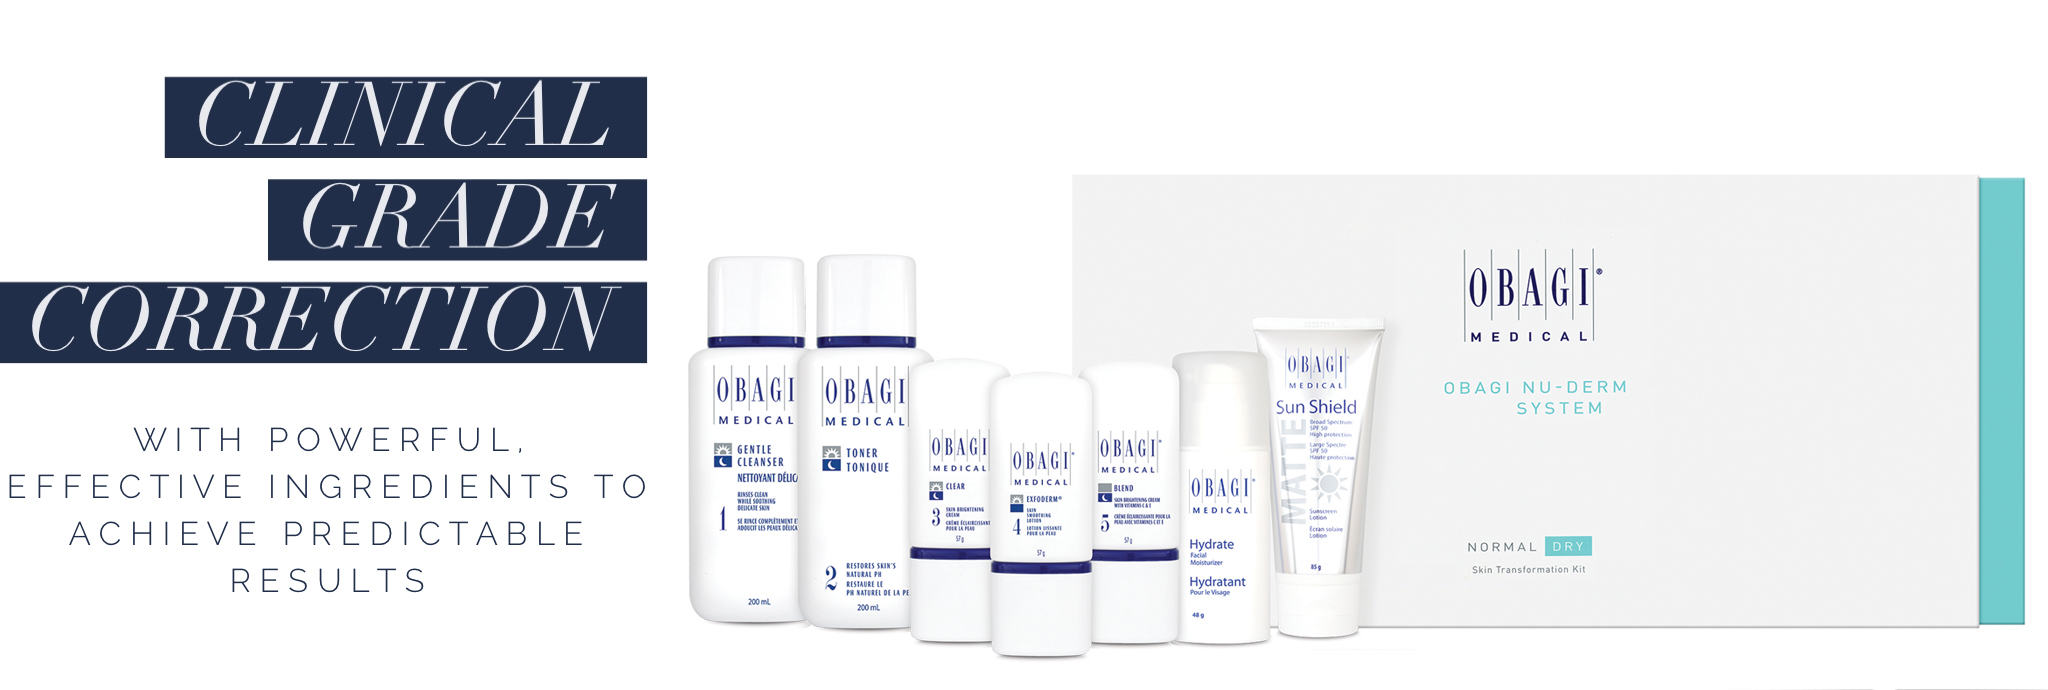 Obagi Medical Clinical Grade Correction